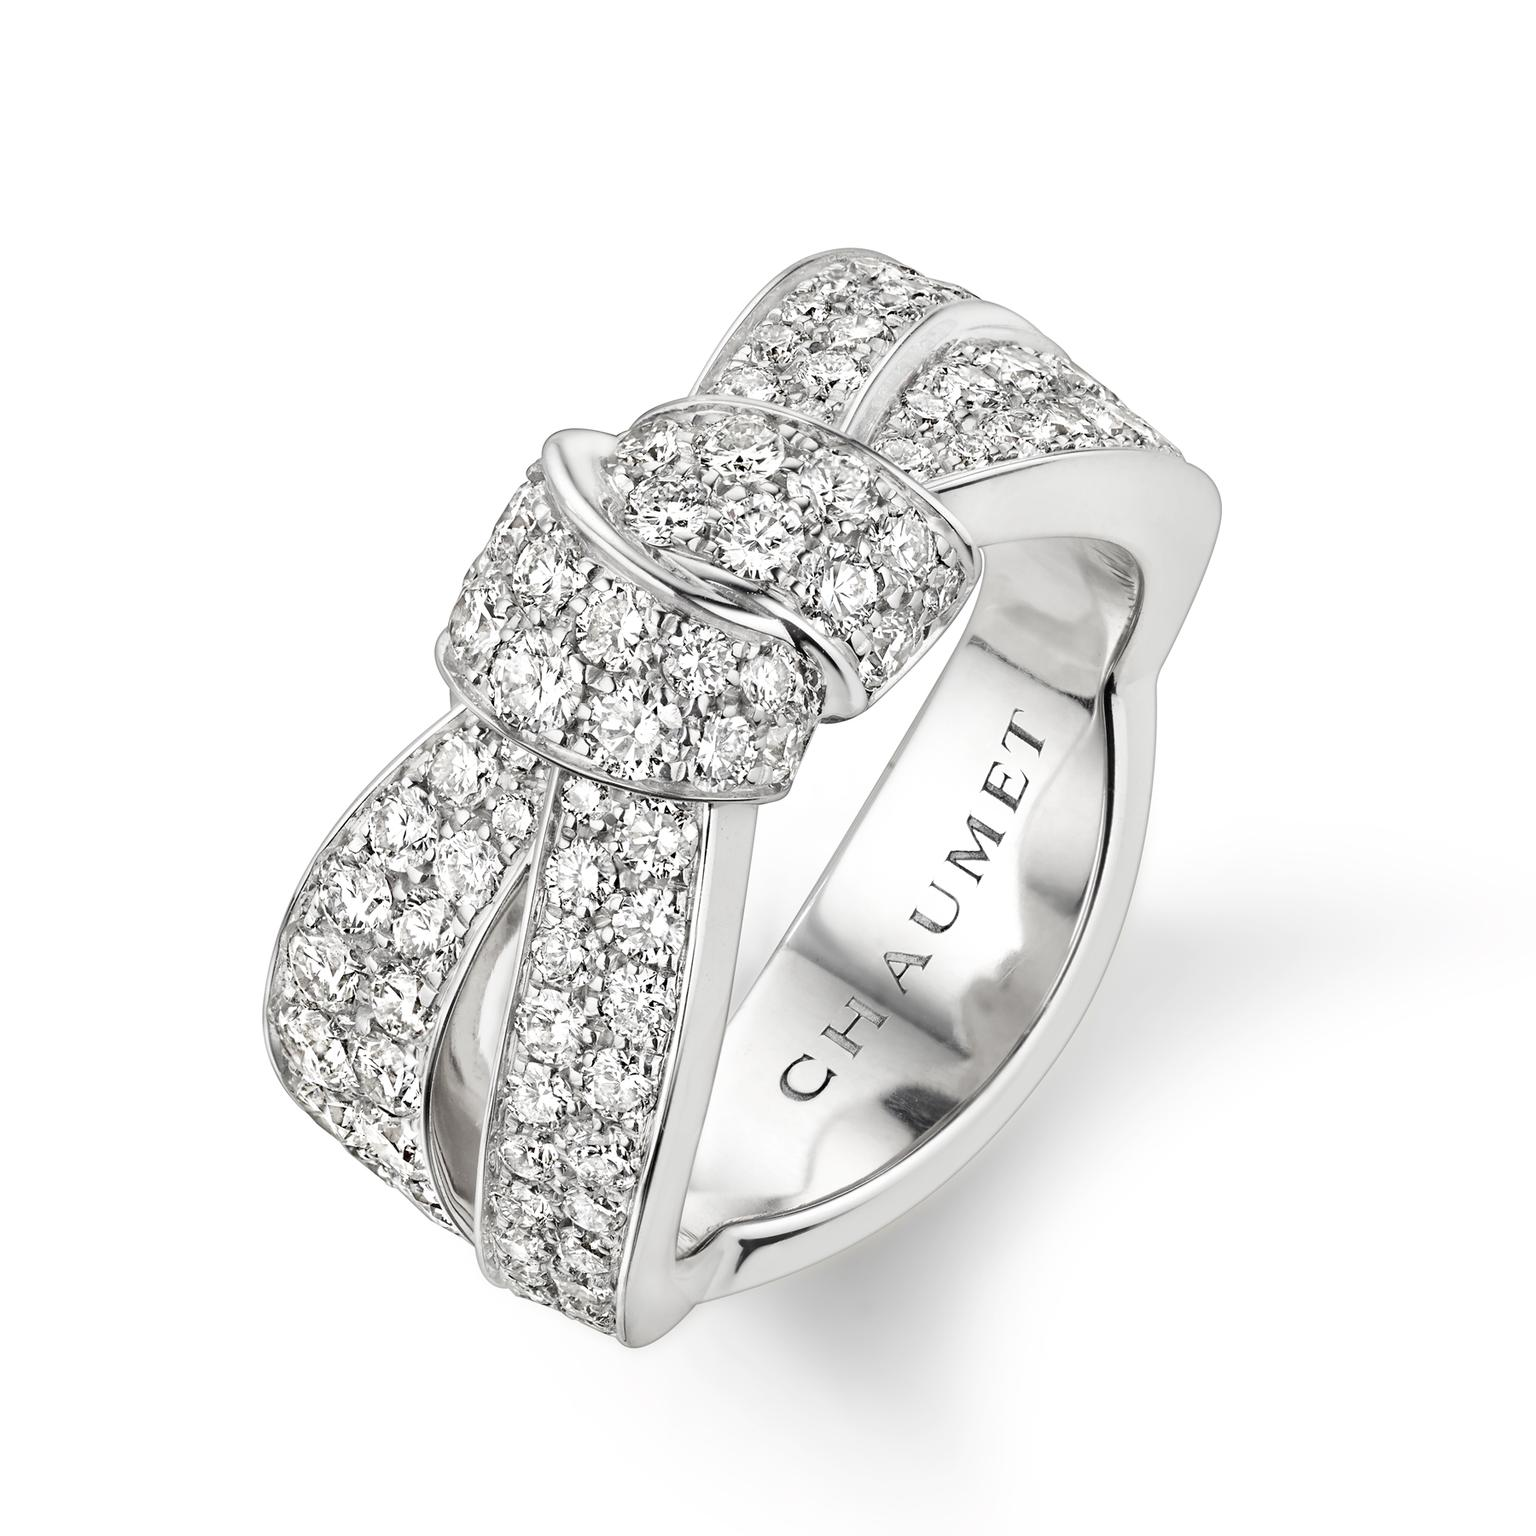 Chaumet Séduction white gold ring with diamonds